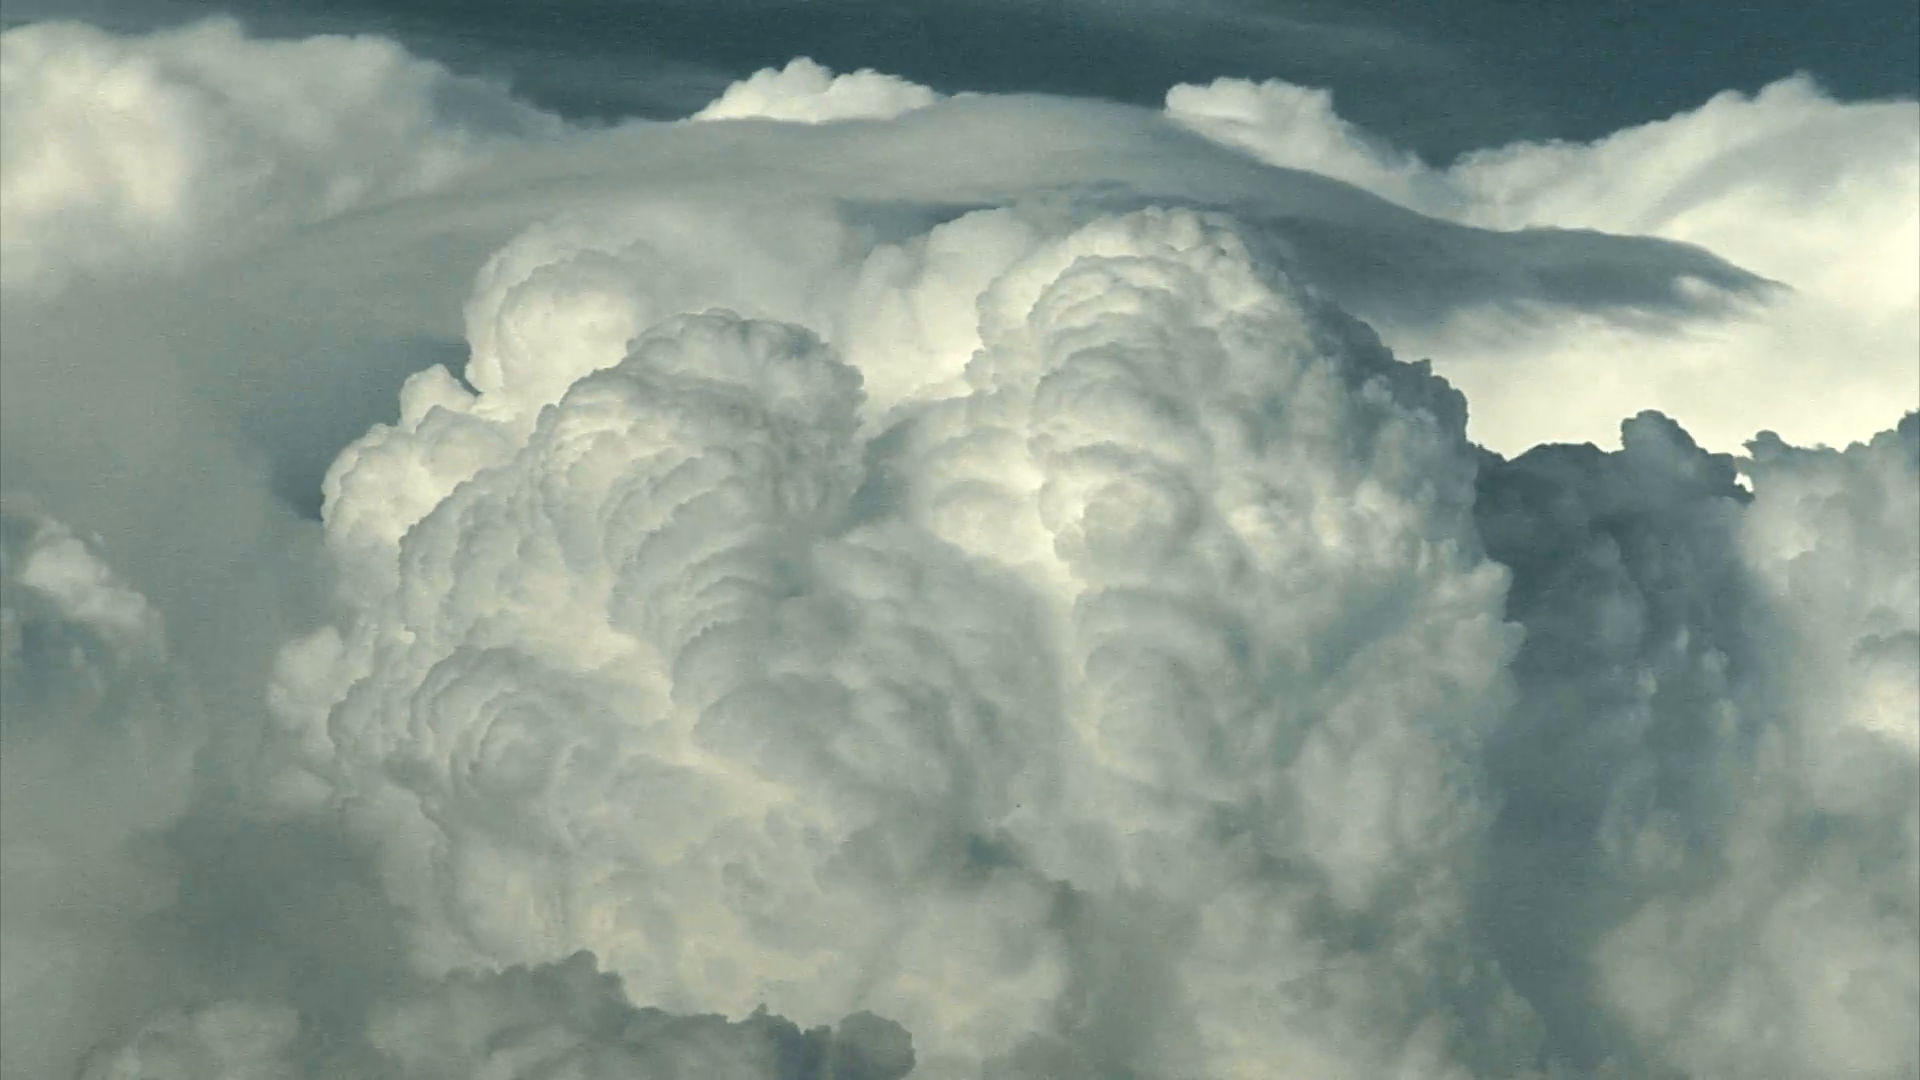 Giant Clouds Billow Into The Sky Stock Video Footage - Videoblocks